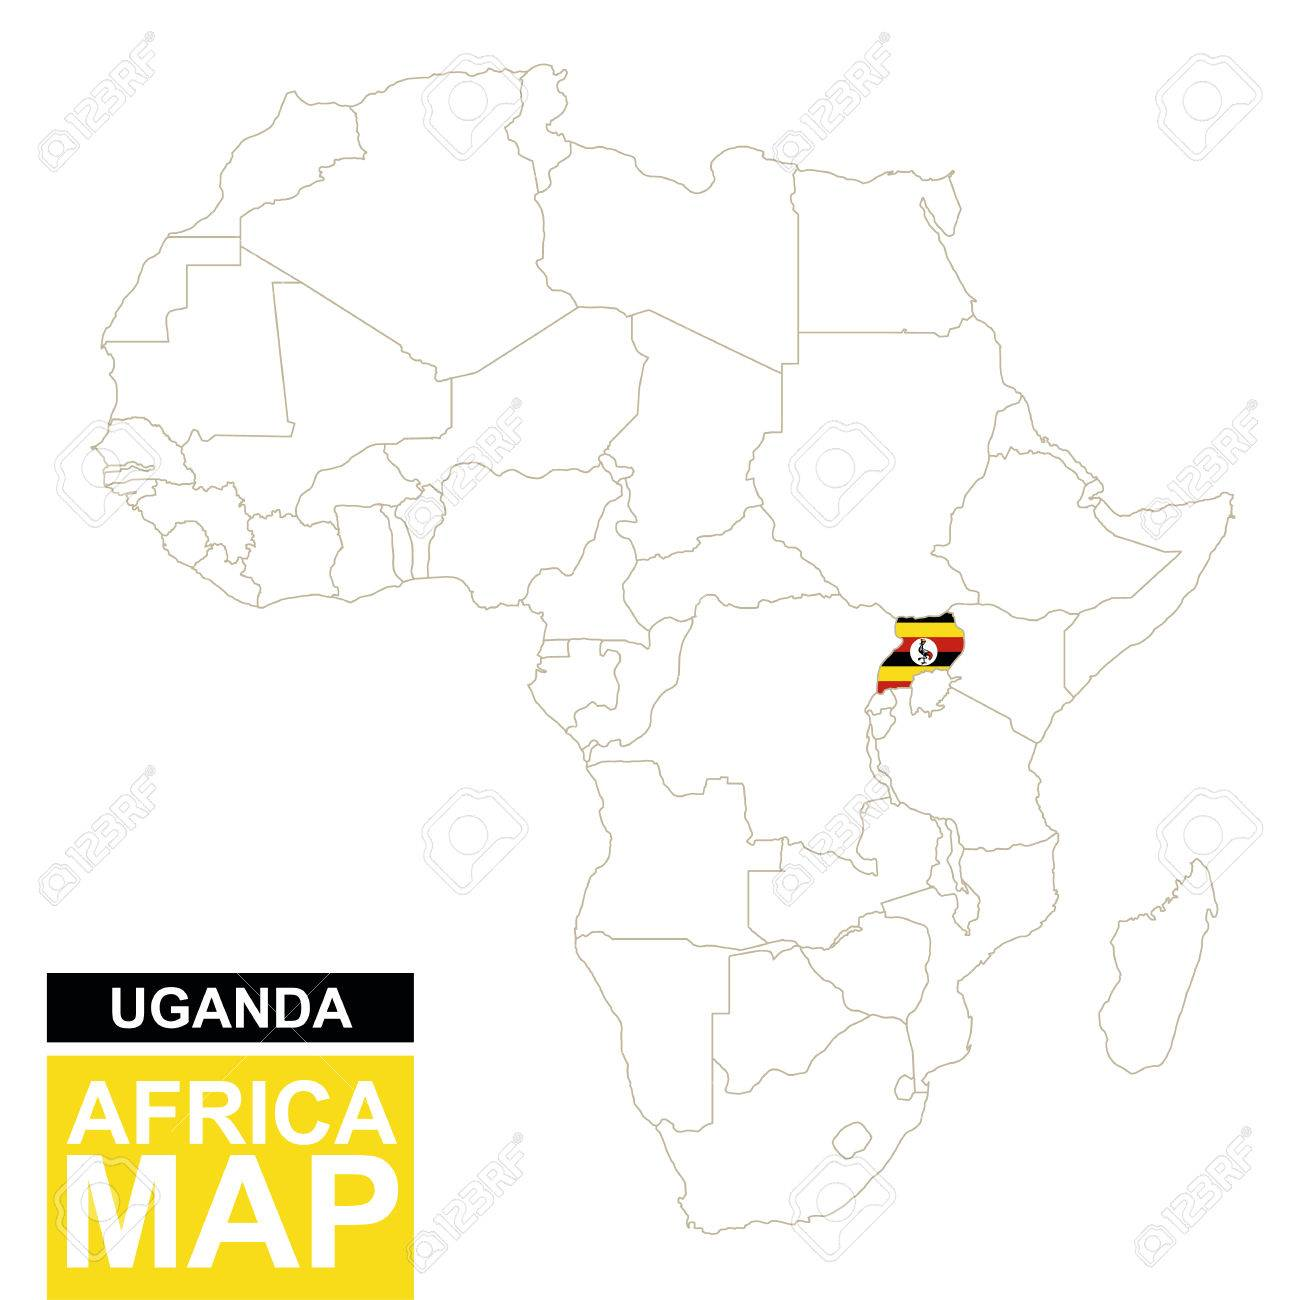 Africa Contoured Map With Highlighted Uganda Uganda Map And